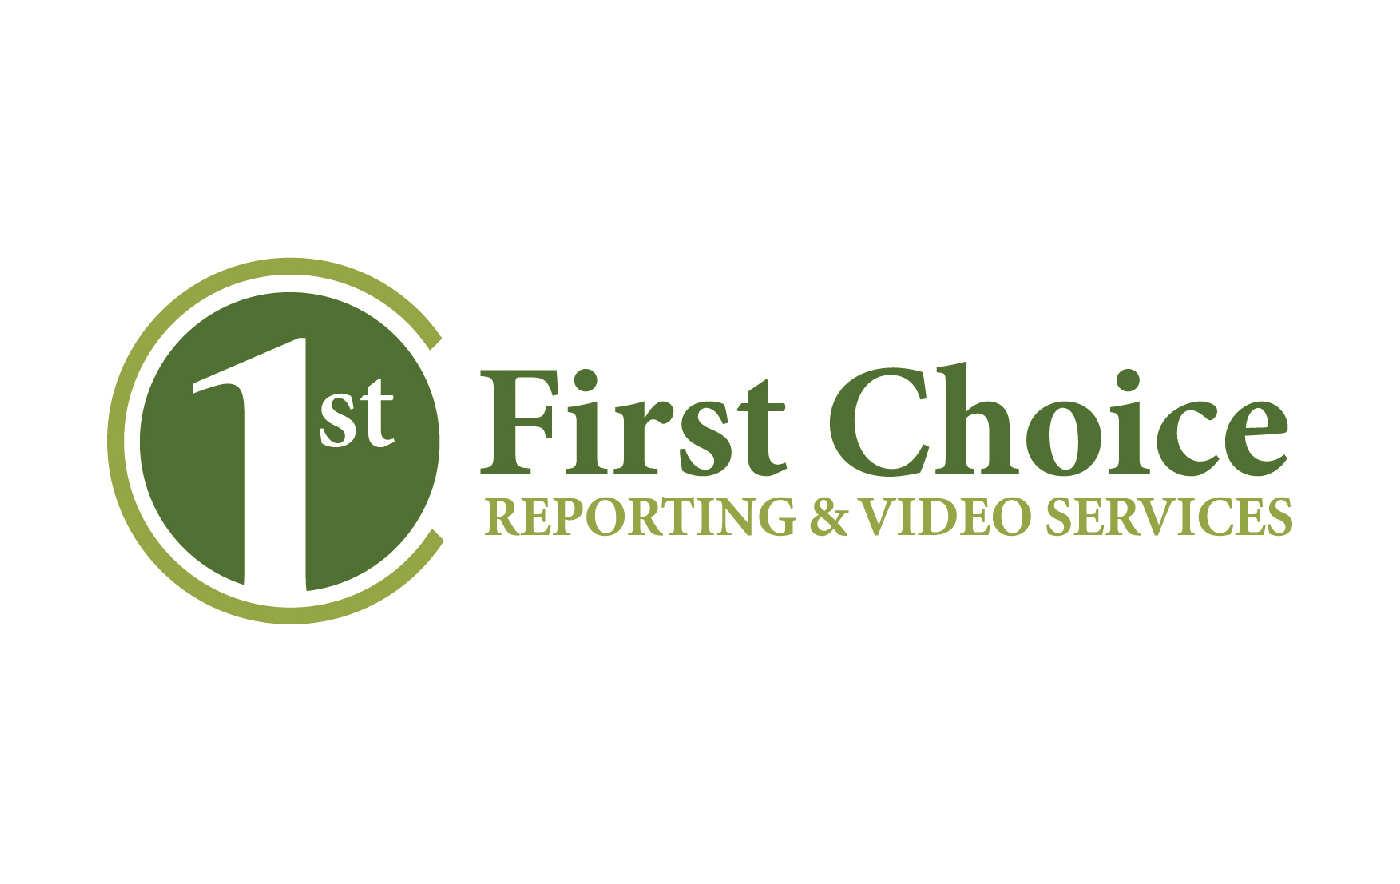 First Choice Reporting & Video Services